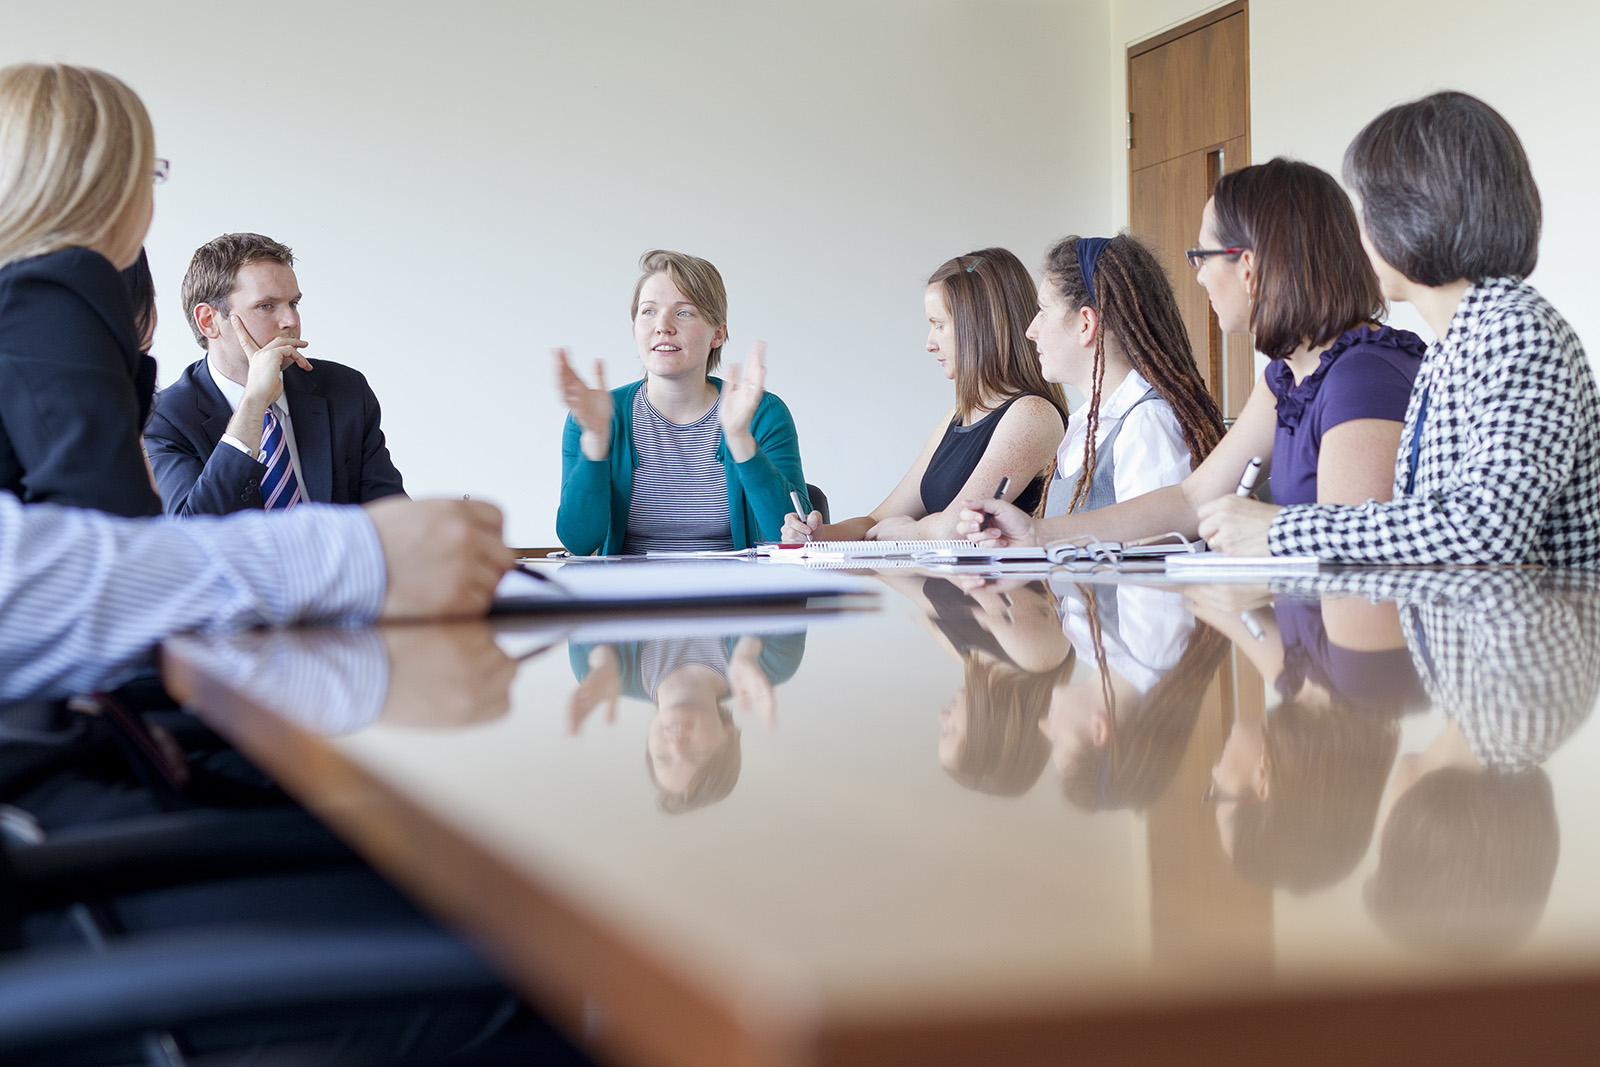 Staff in a meeting room